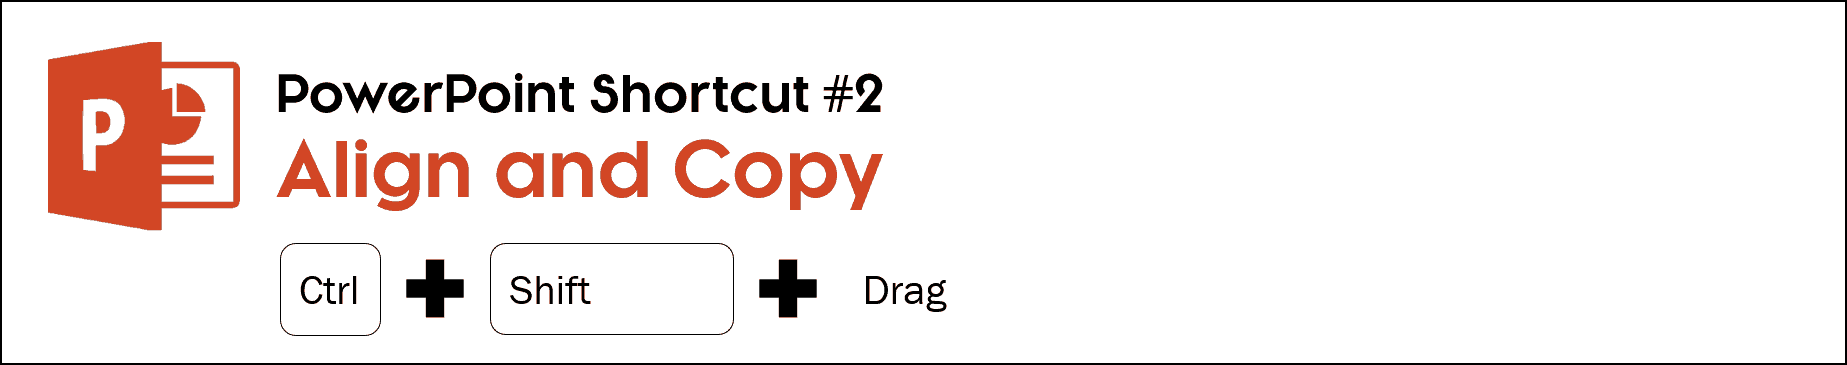 To create a perfectly aligned copy of an object in PowerPoint, select the object and holding the control plus shift key drag the object to a new place on your slide